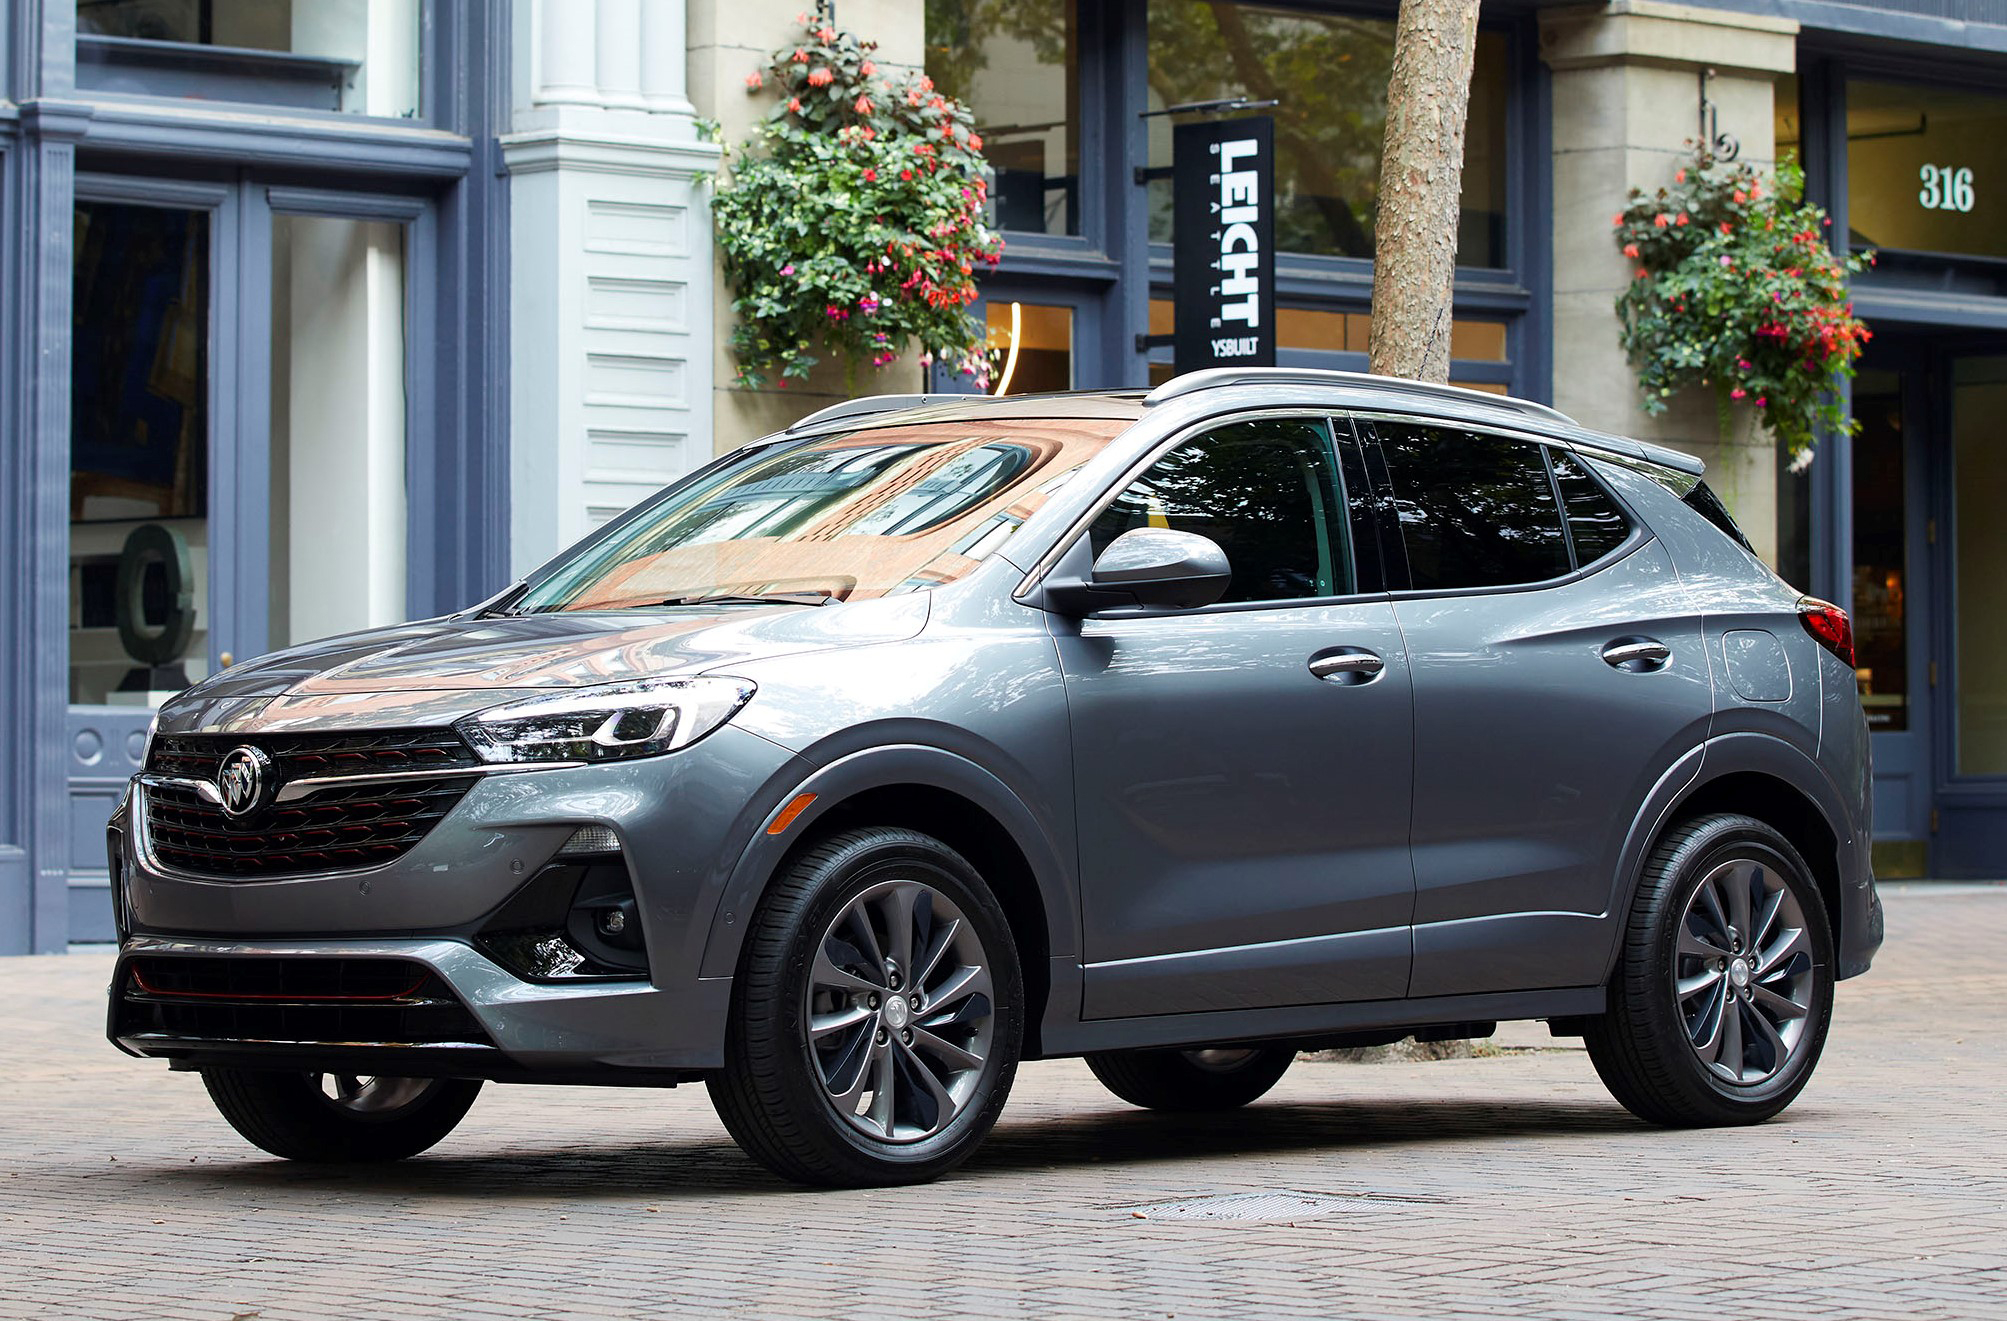 Buick Encore Gx Discount 0 Percent Apr, Cash March 2020 | Gm 2022 Buick Encore Gx Lease Price, Mpg, Msrp